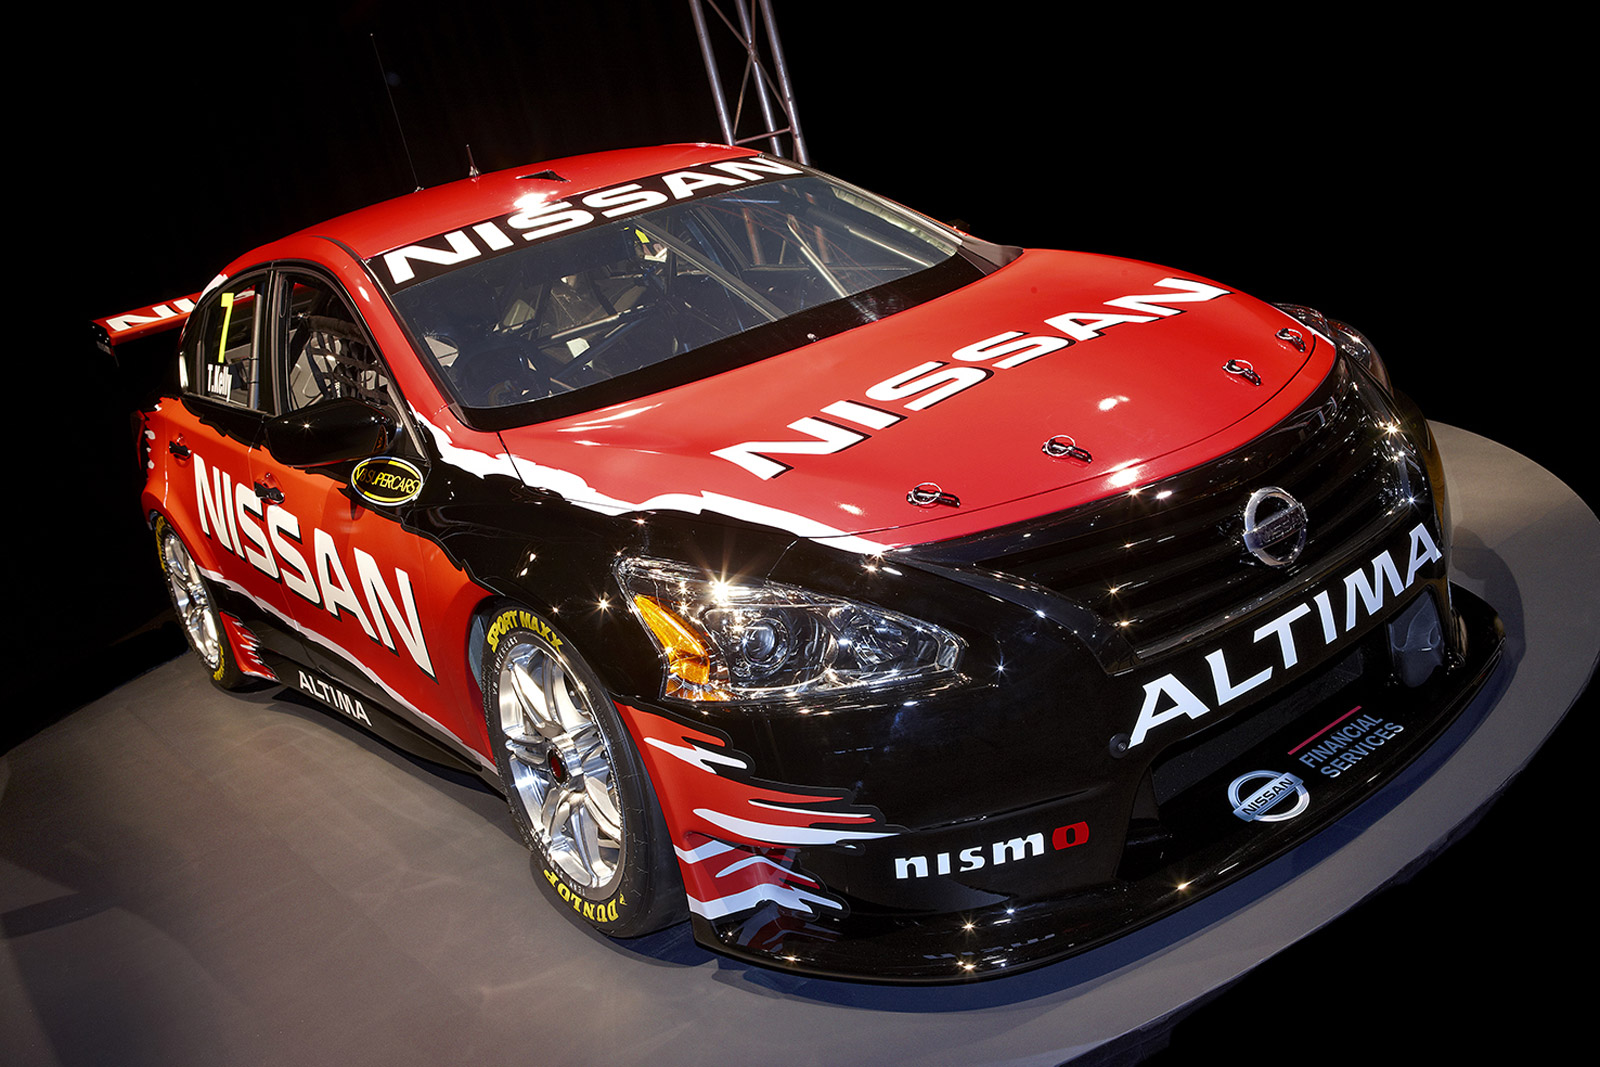 Nissan Altima V8 Supercars Race Car Revealed on hot wheels nissan, lego nissan, tuned nissan, michael jordan nissan, matchbox nissan, gran turismo 4 nissan, small nissan, camionetas nissan, old nissan, tomica nissan, carros nissan, mini truckin nissan, paul walker nissan, classic nissan,